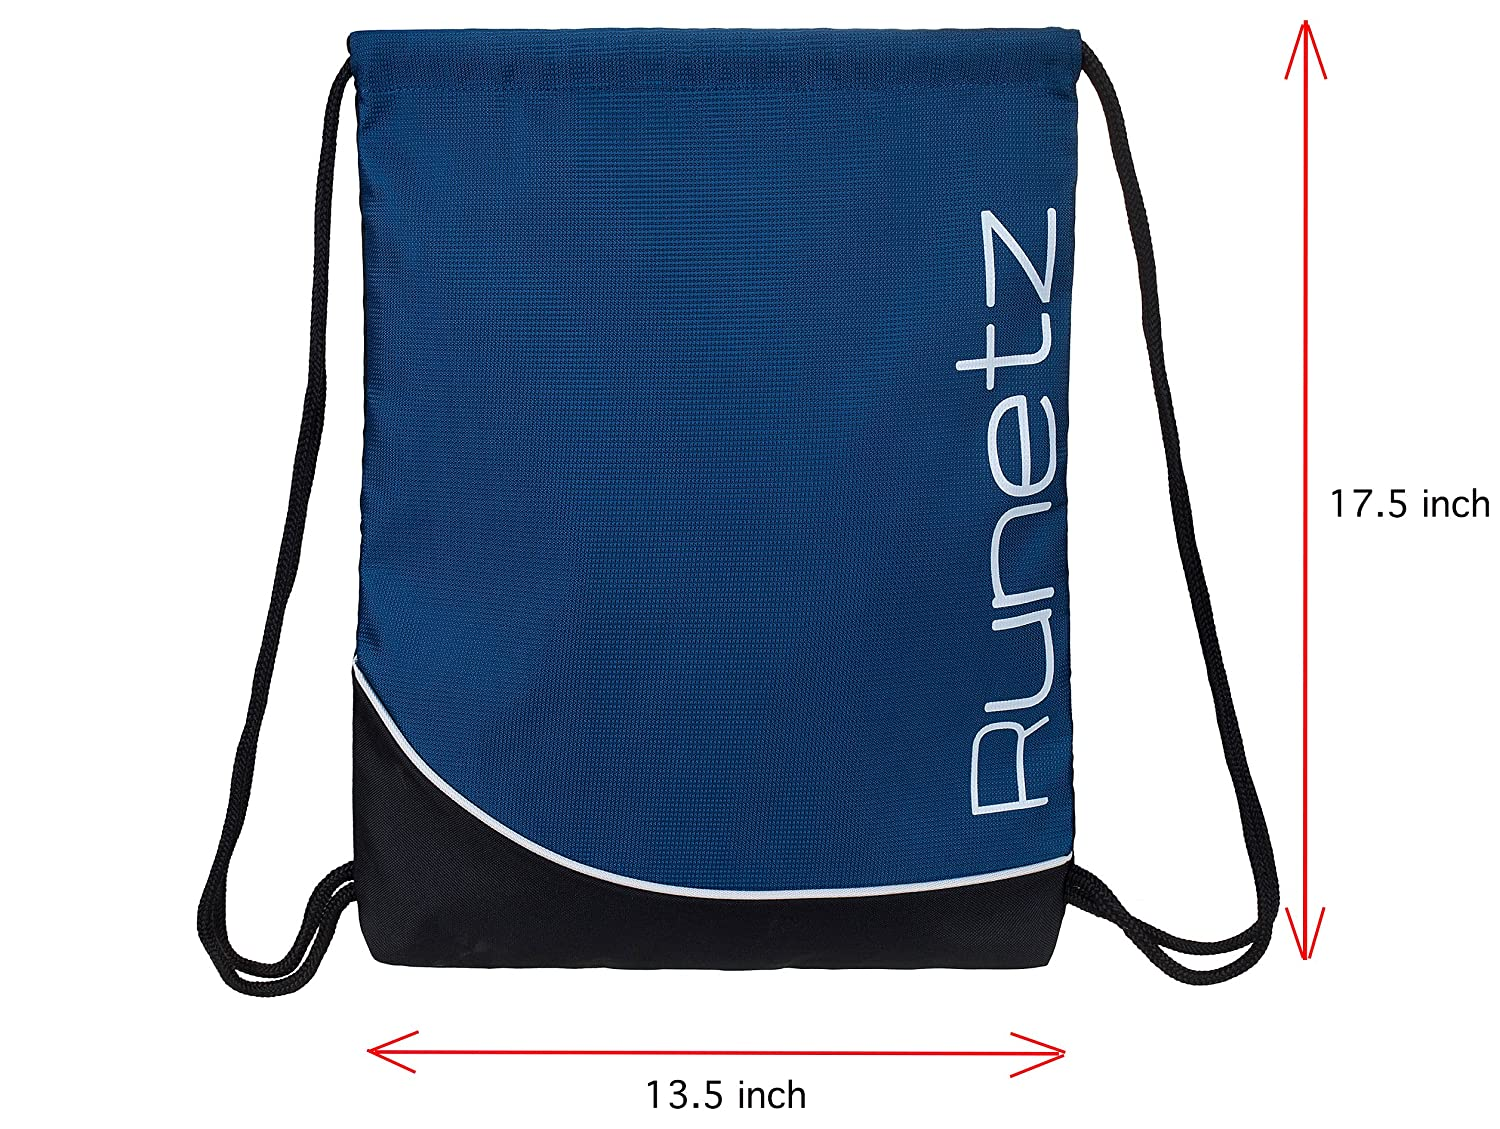 Runetz size 17.5 x 13.5 inch Books size 17.5 x 13.5 inch School Black Sackpack for Women and Men Drawstring Gym Bag Books Travel Polyester Gym Sack String Backpack with Inside Pocket for Sport Workout